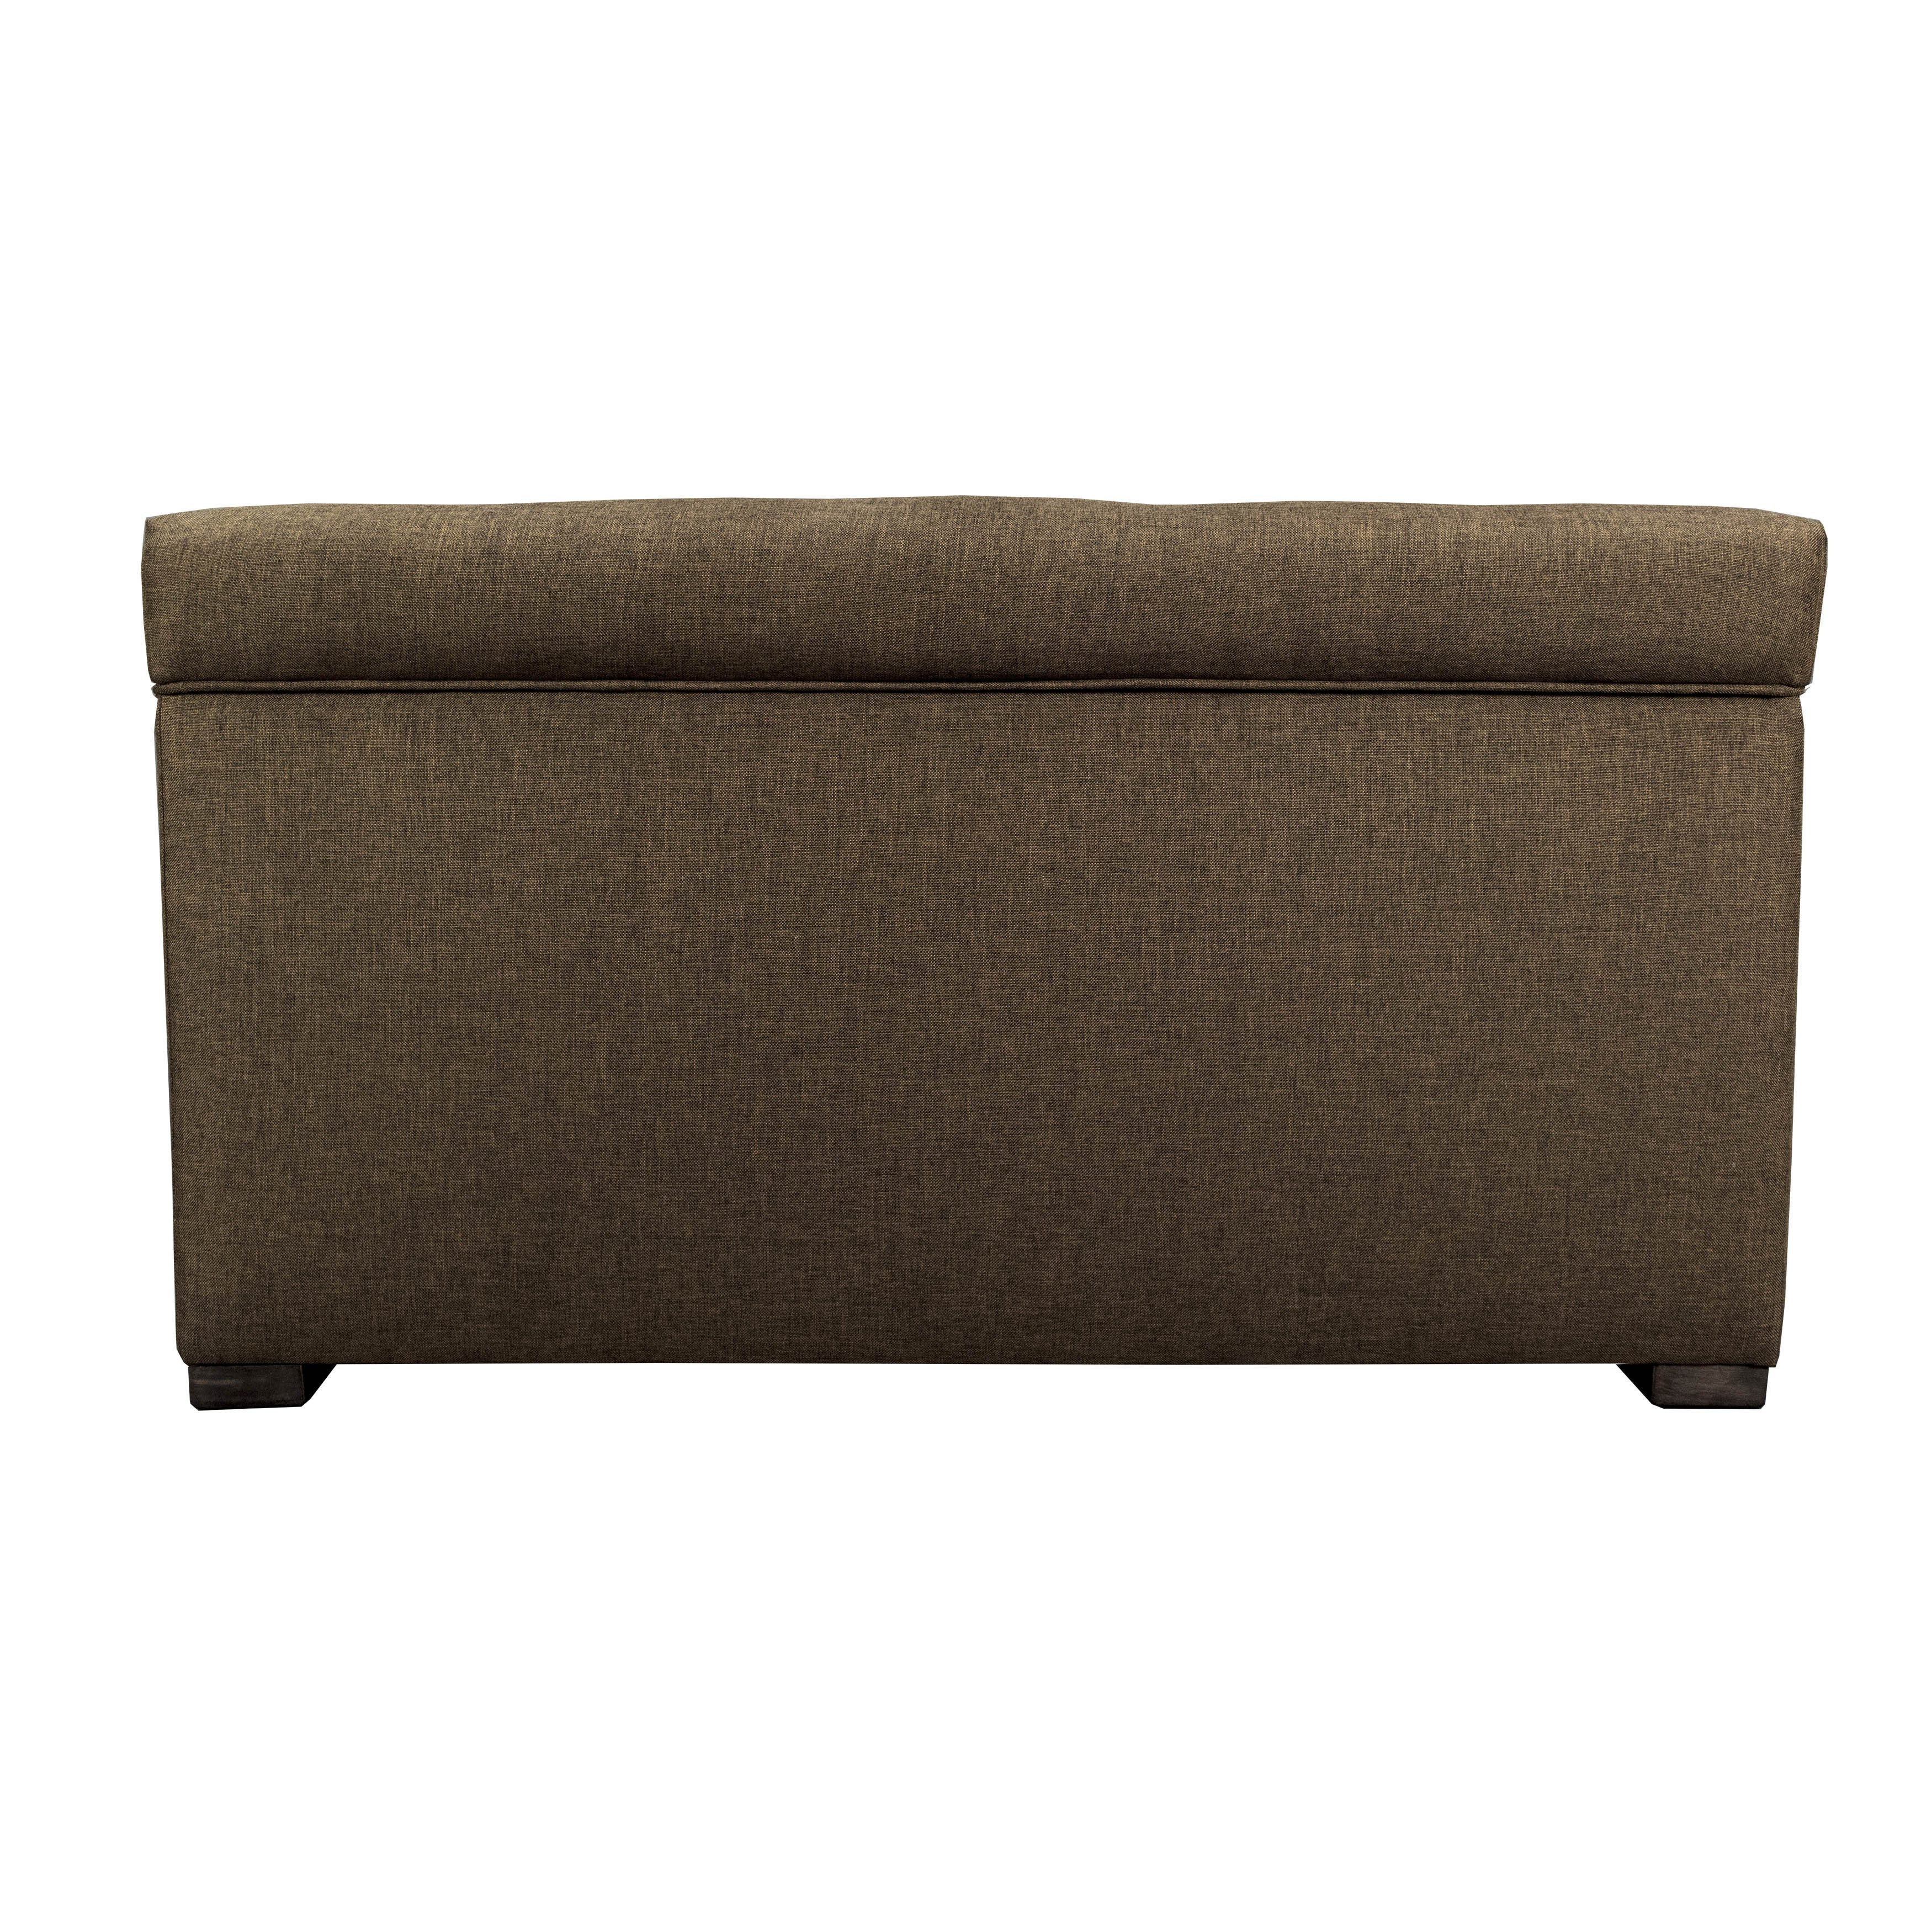 Angela 8-button Tufted Sand Storage Trunk Bench (Brown) (...